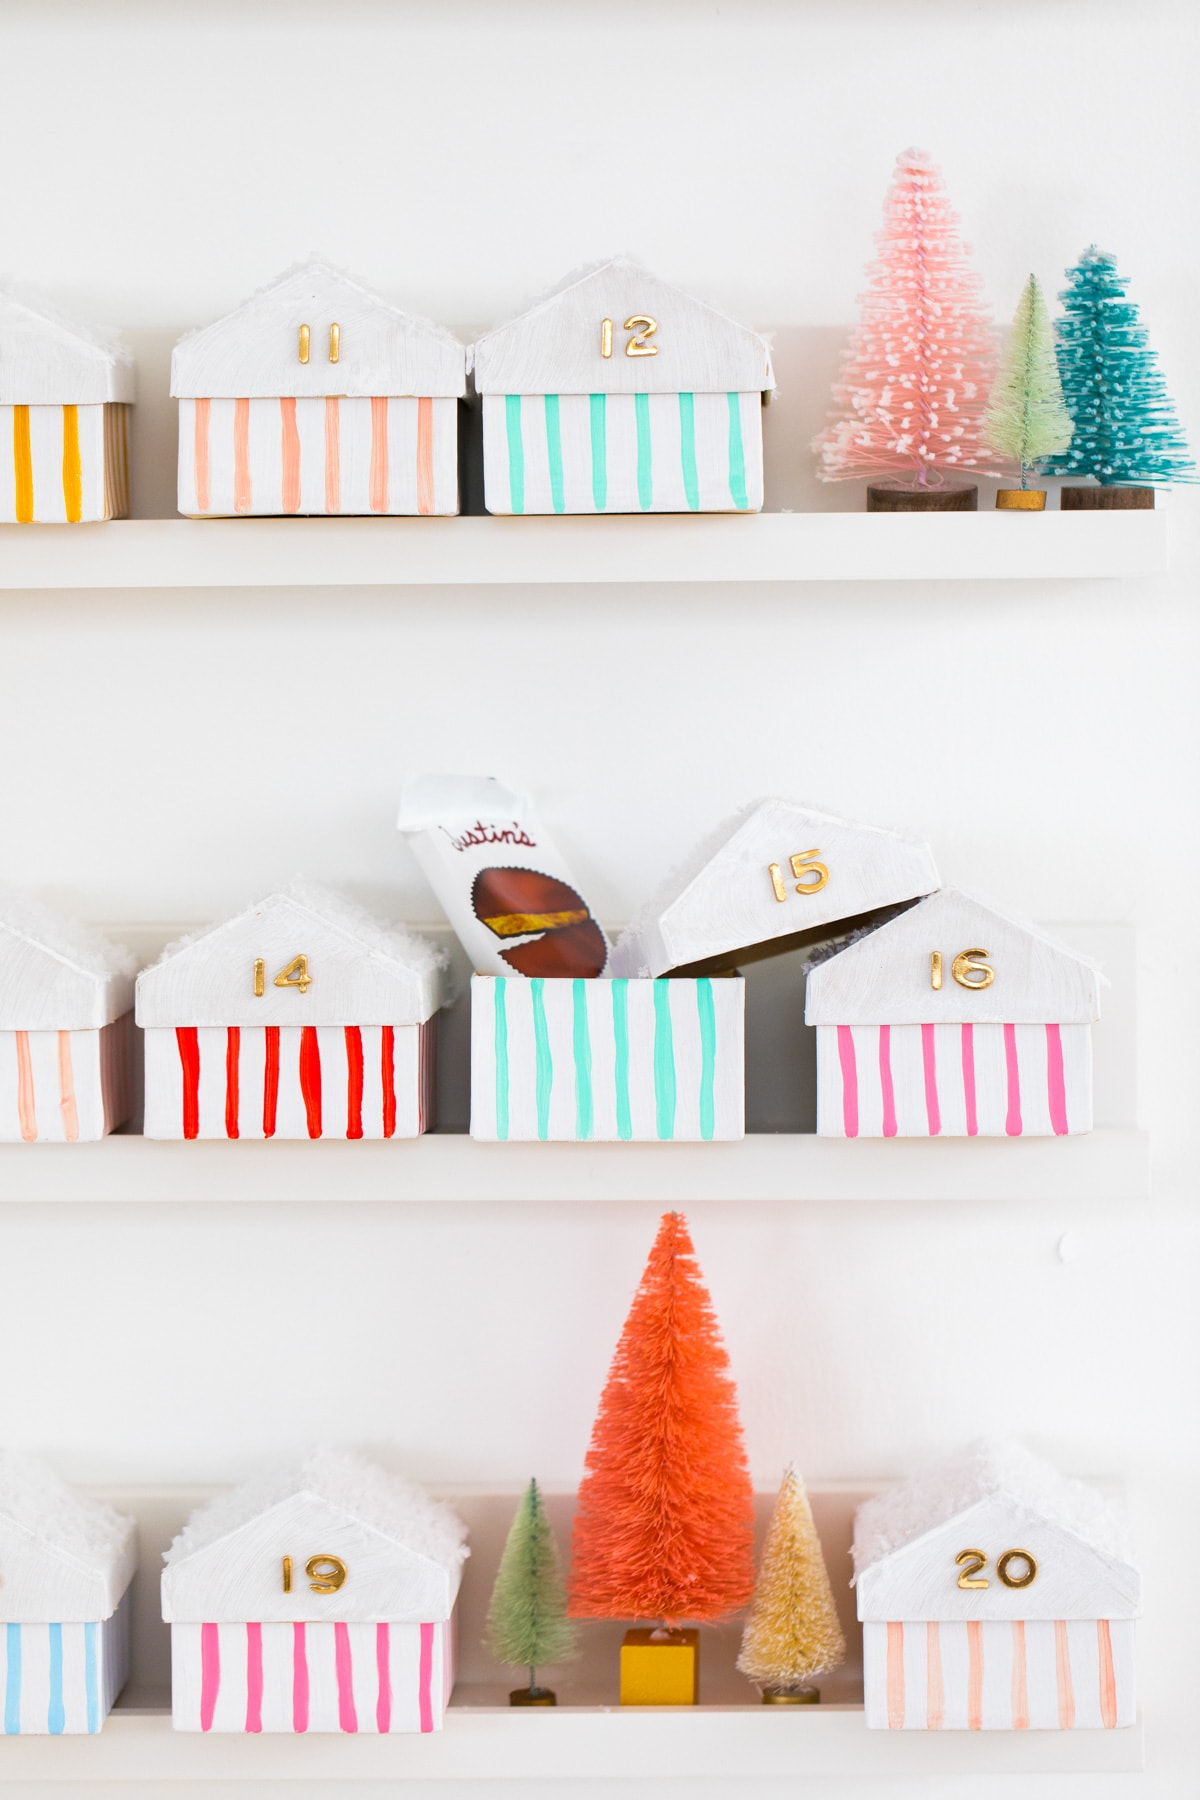 cute idea of what to put in an advent calendar! Colorful Houses DIY Advent Calendar by top Houston lifesyle blogger Ashley Rose of Sugar and Cloth #diy #christmas #advent #holiday #decor #idea #howto #kids #crafts